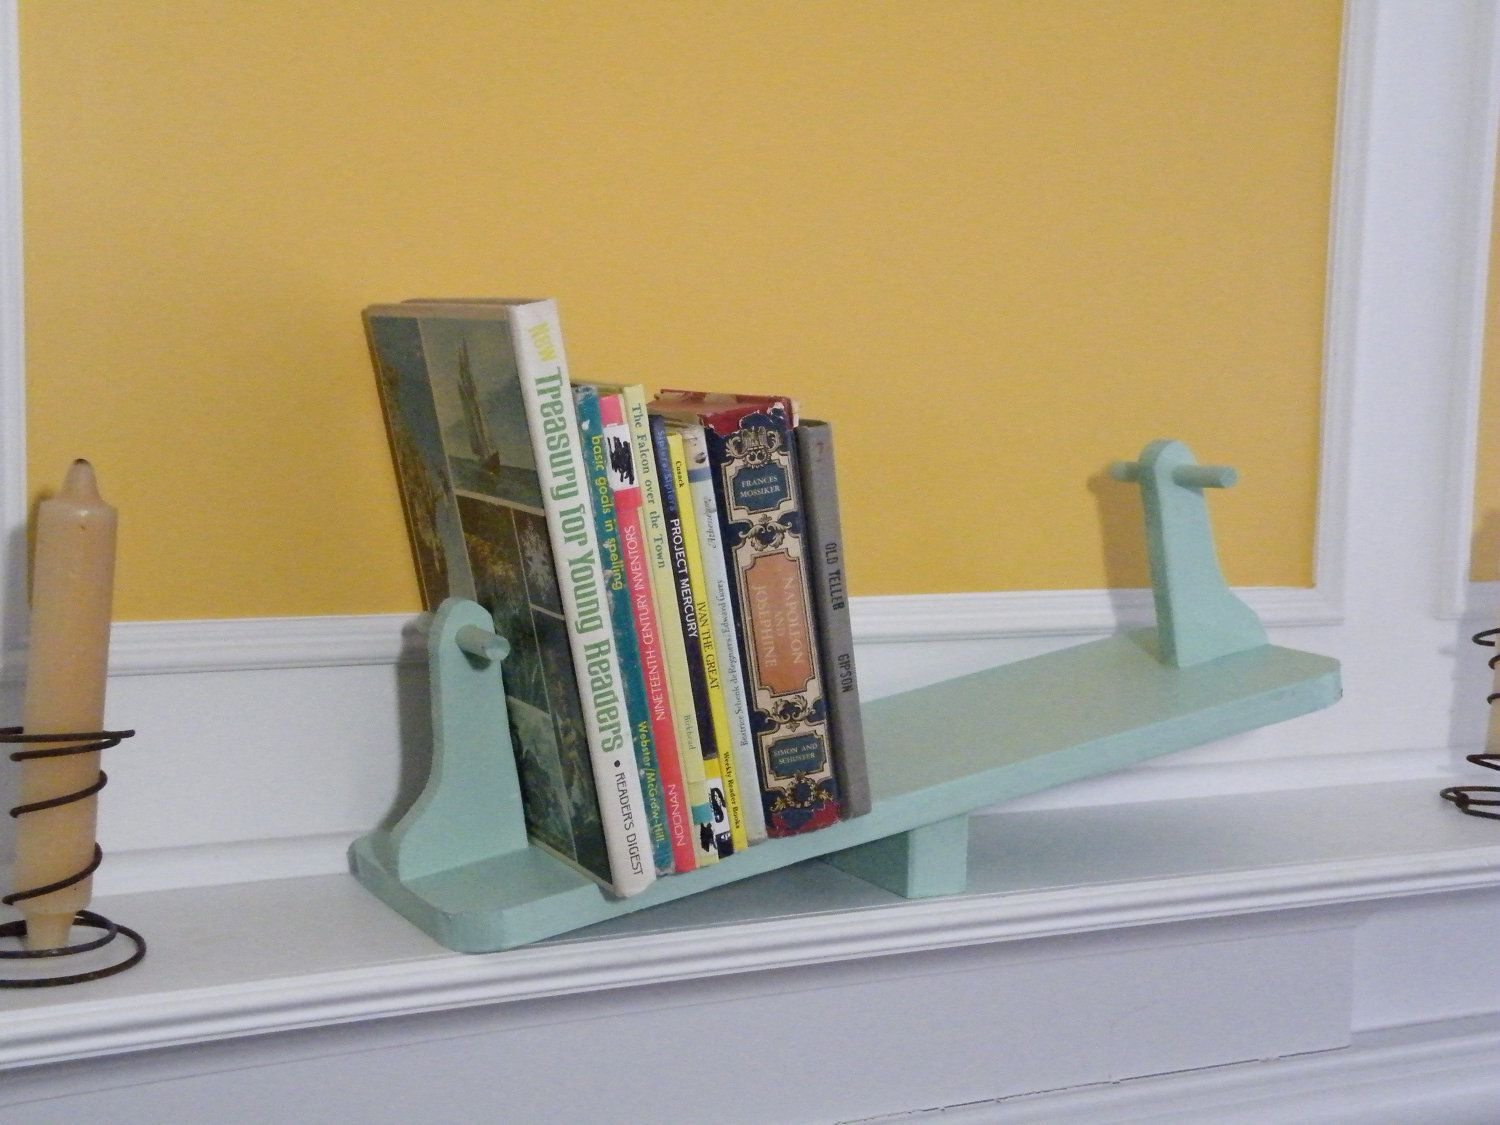 Been Looking For Bookends For The Baby S Room But This Is Way Cooler Bookends For Nursery Bookend 62 00 Creative Bookshelves Bright Nursery Decor Decor